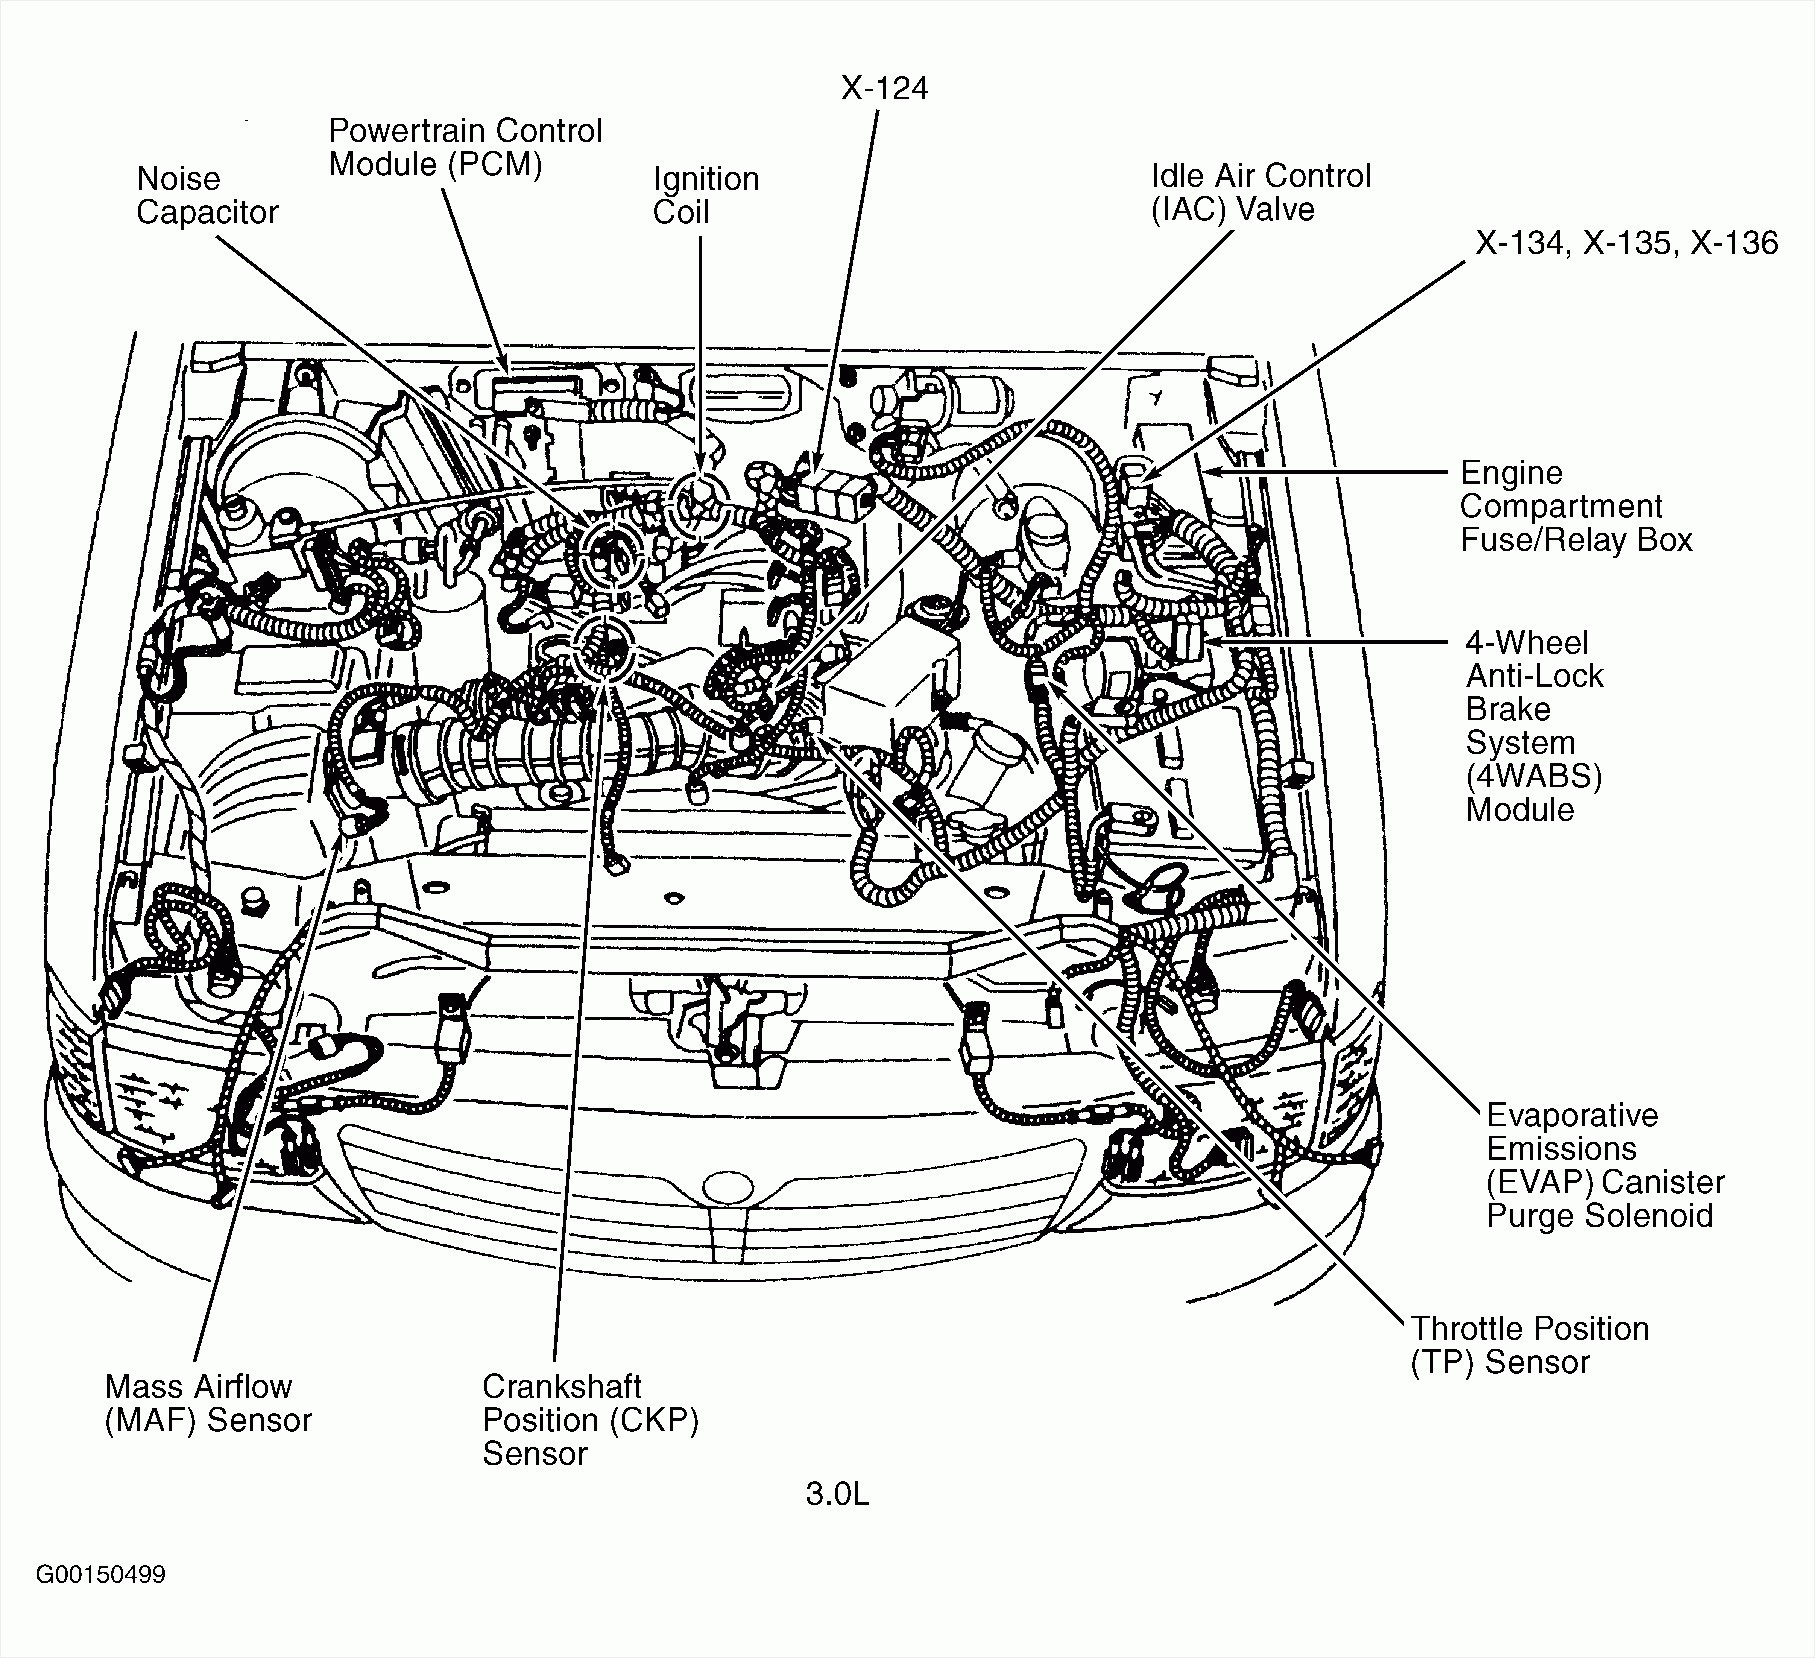 hight resolution of 2000 ford windstar heater hose diagram data diagram schematic ford aerostar engine diagram on 2000 ford